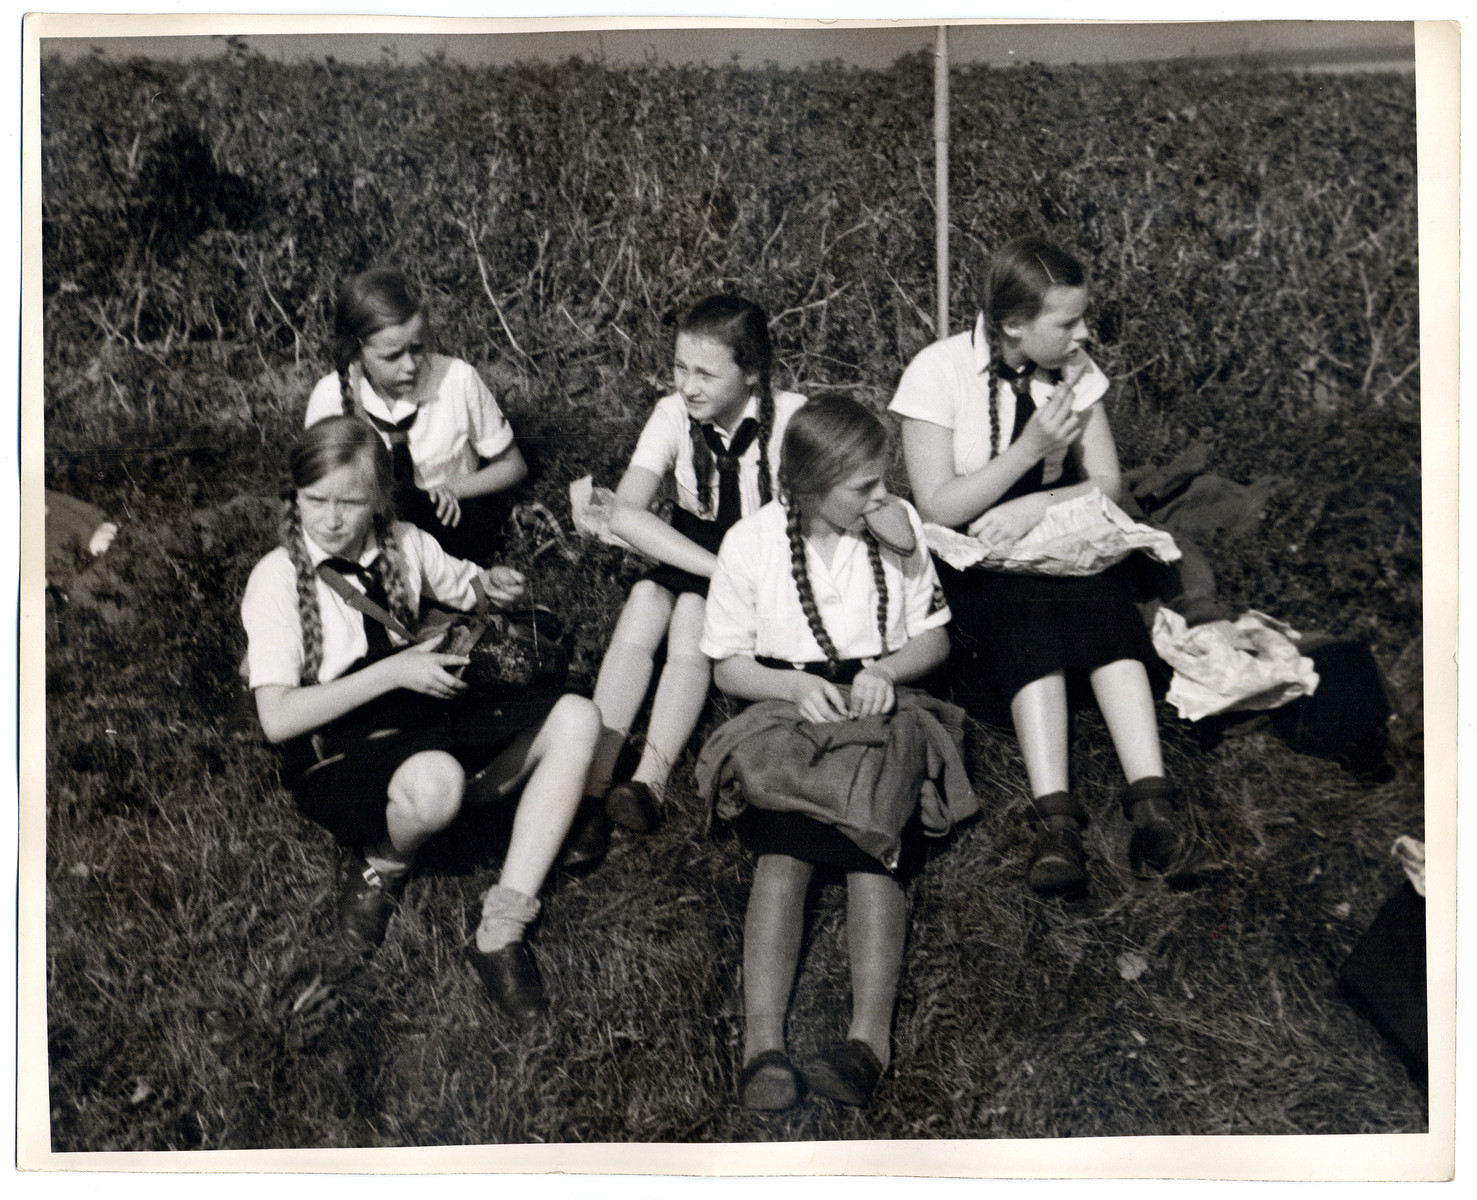 Members of the League of German Girls have a meal on a lawn.